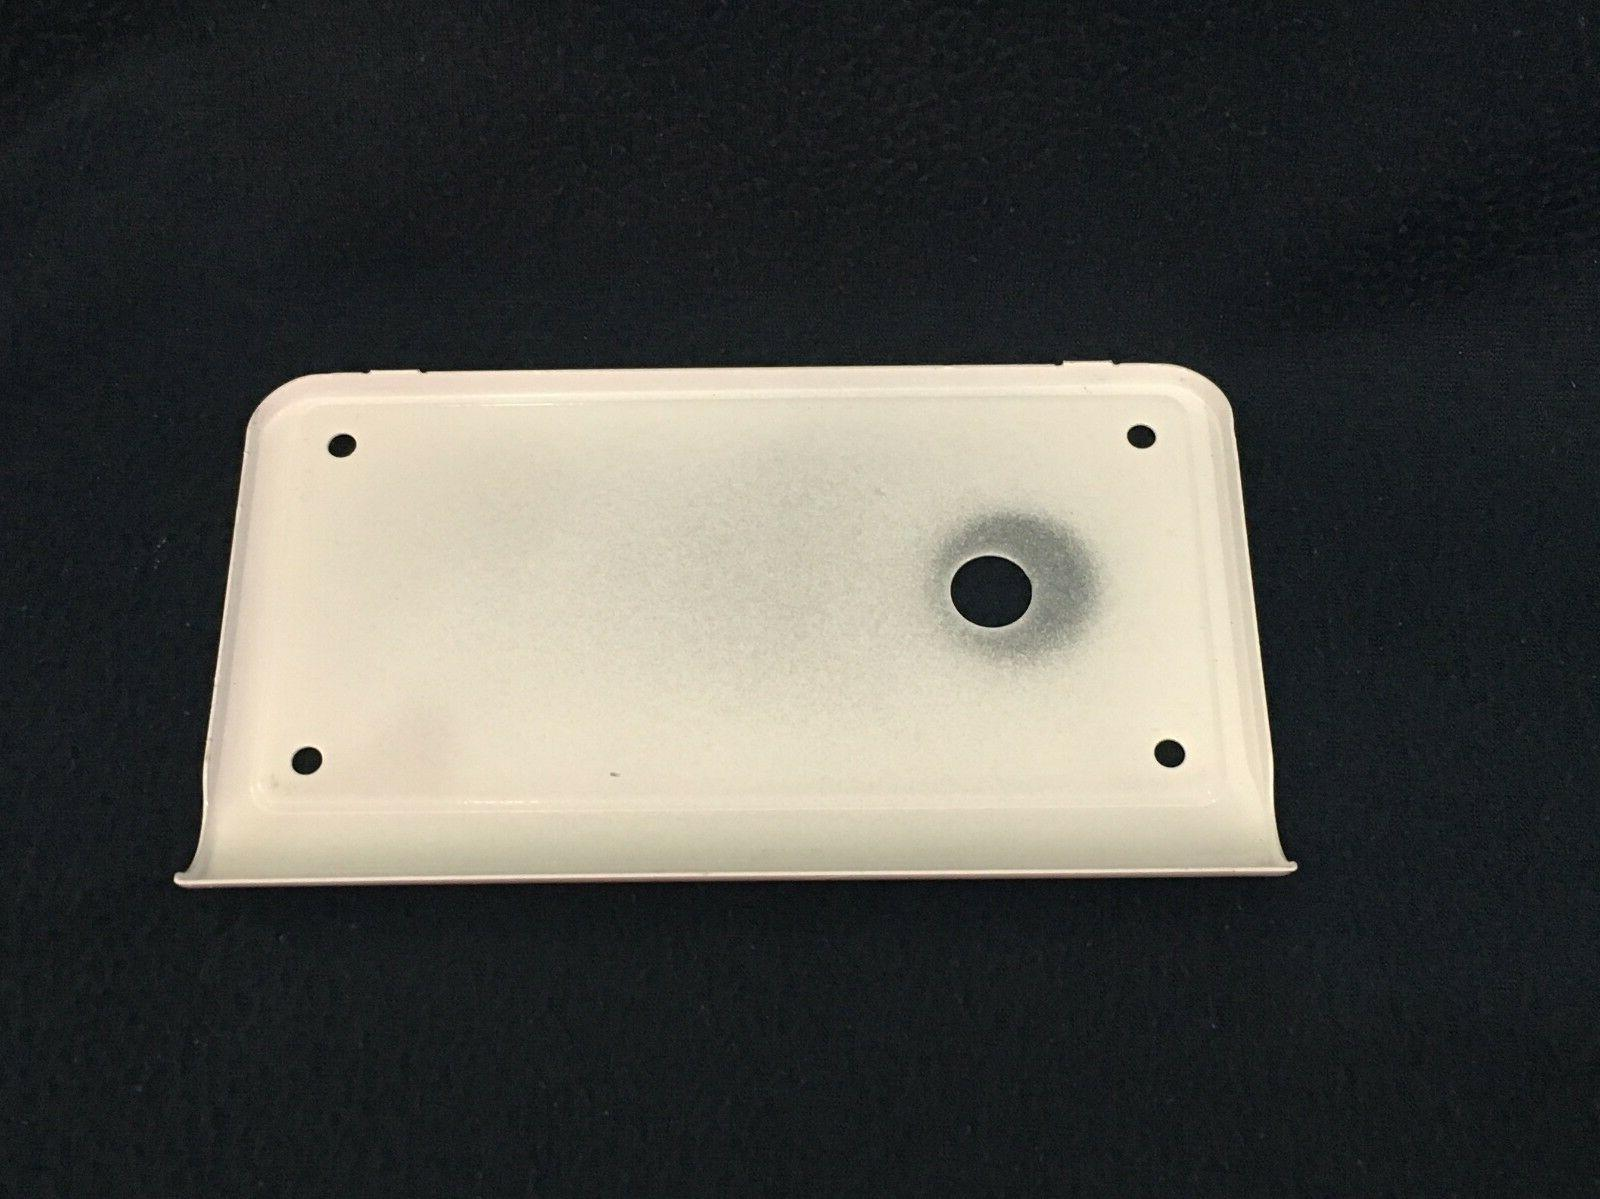 WHIRLPOOL MAYTAG WASHER DISPENSER COVER #